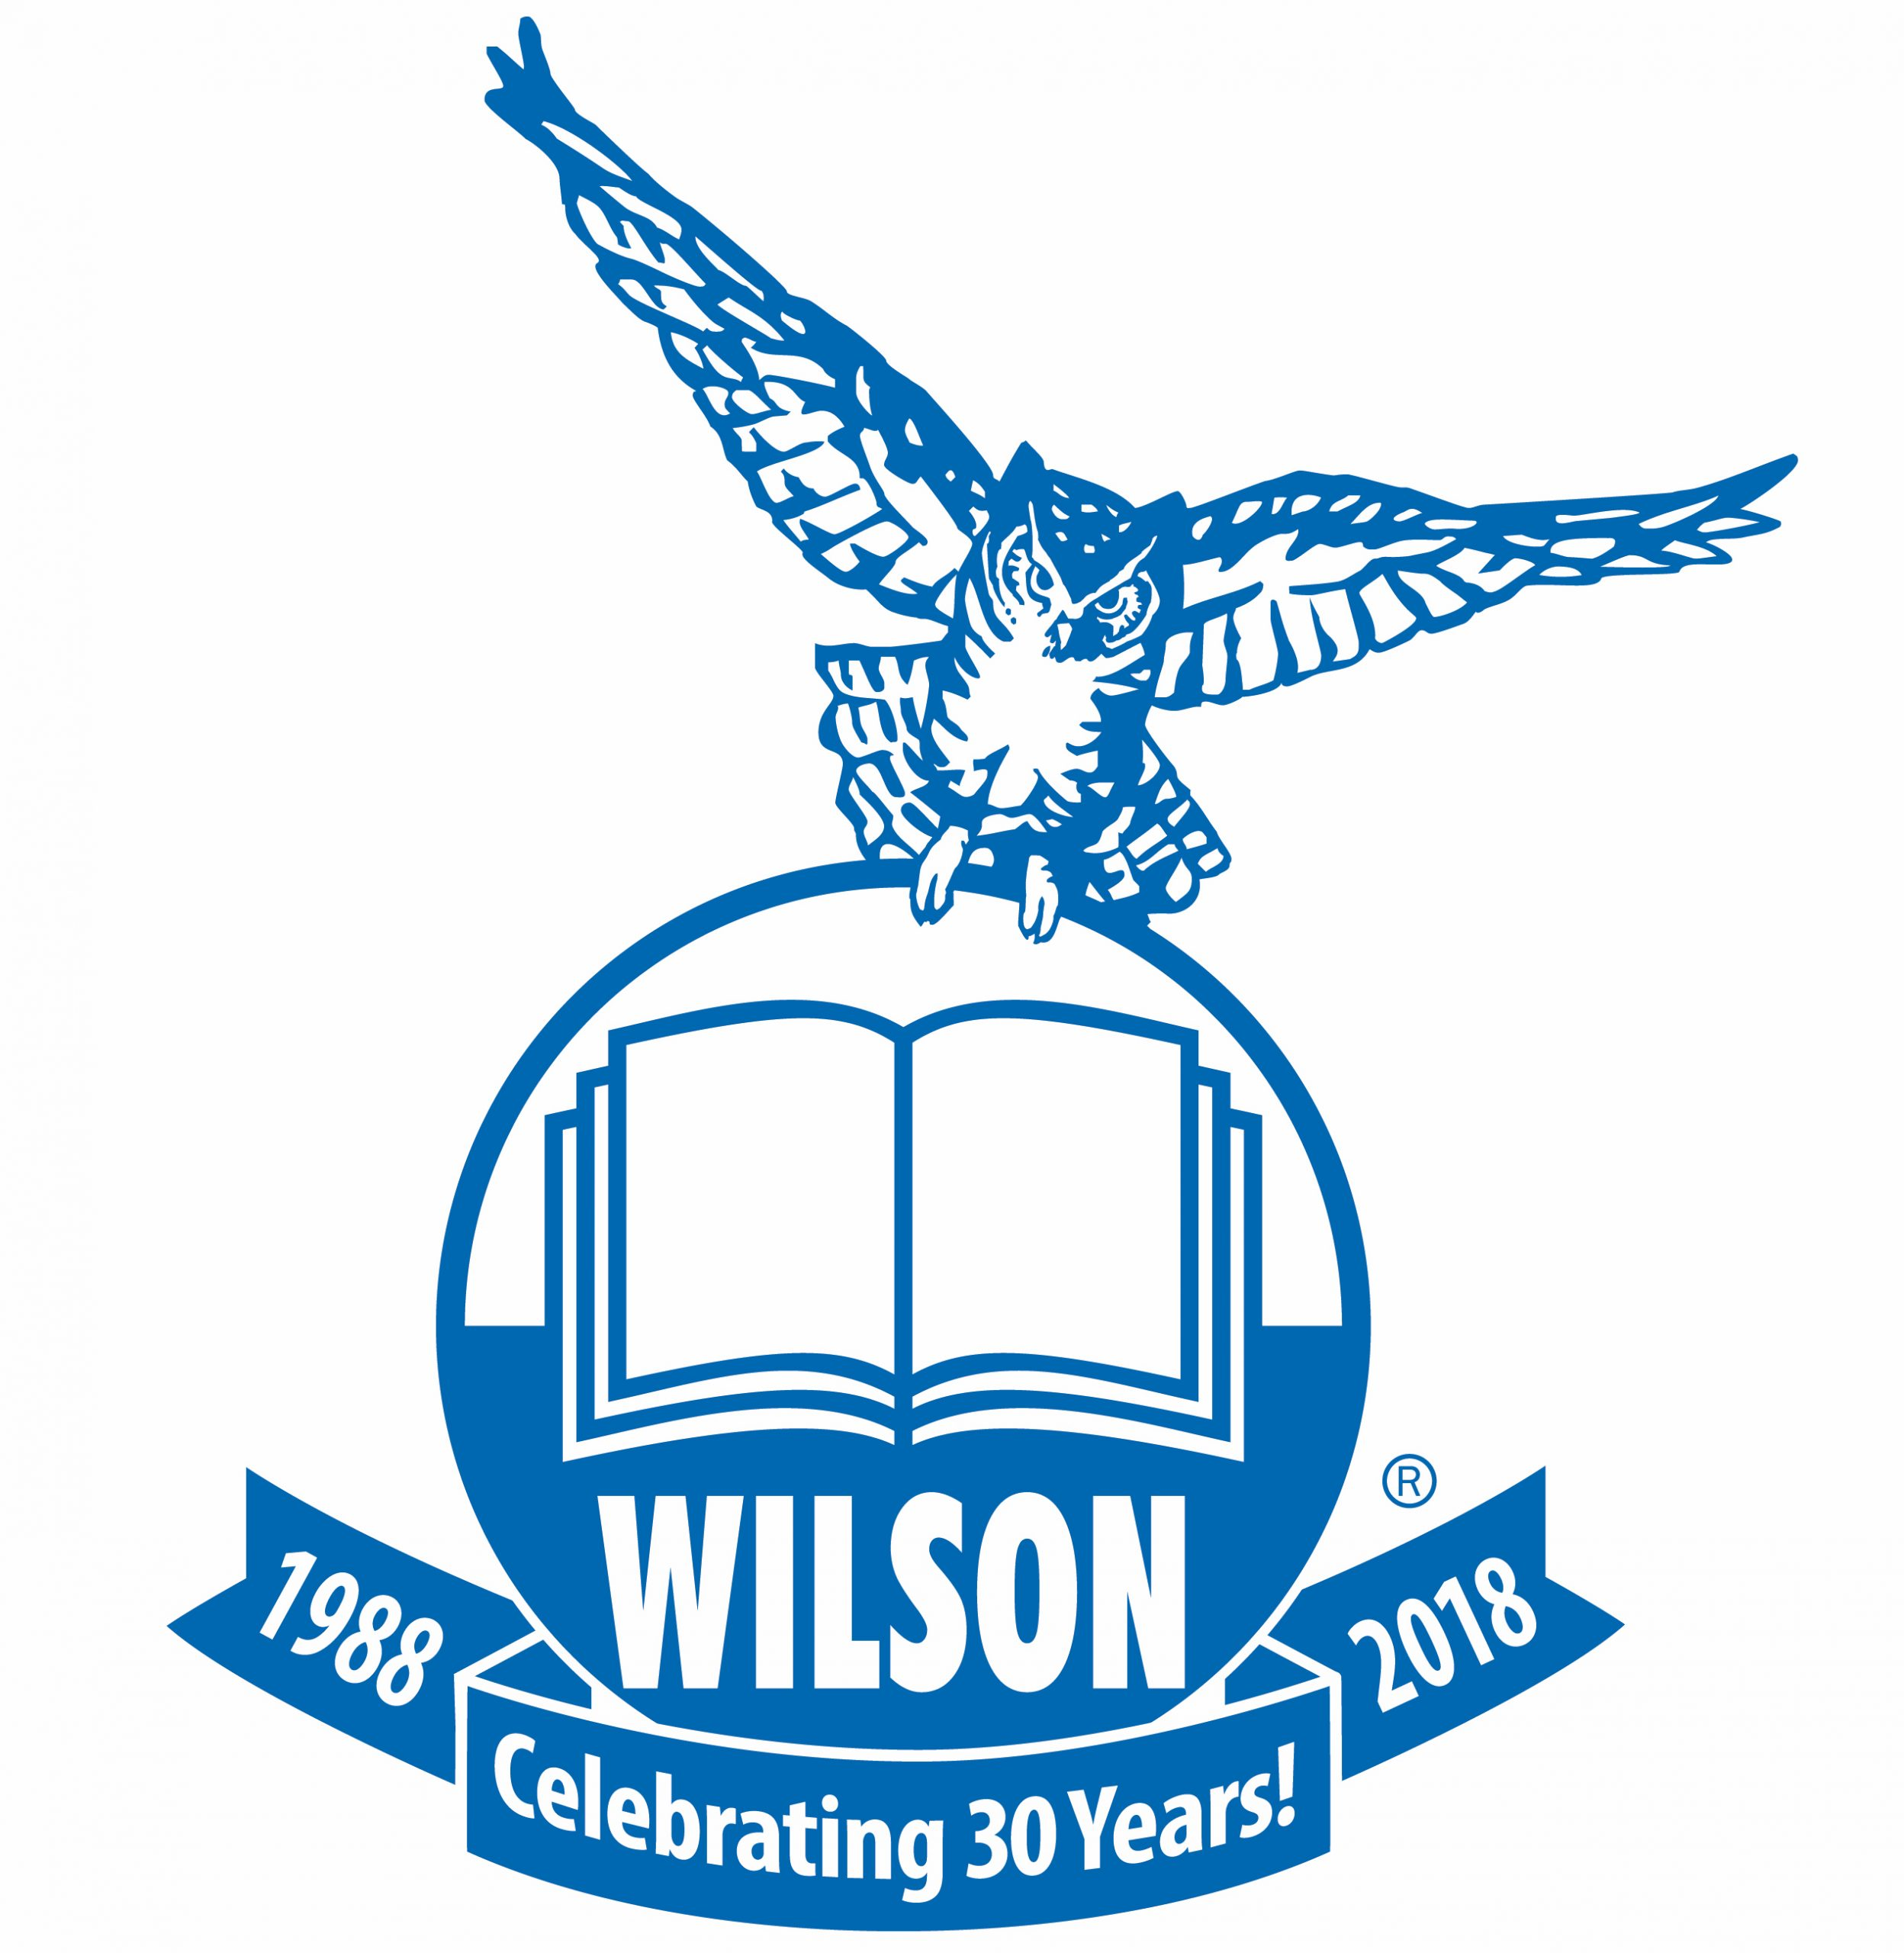 WILSON_LOGO_PMS293 with W_OUTLINE